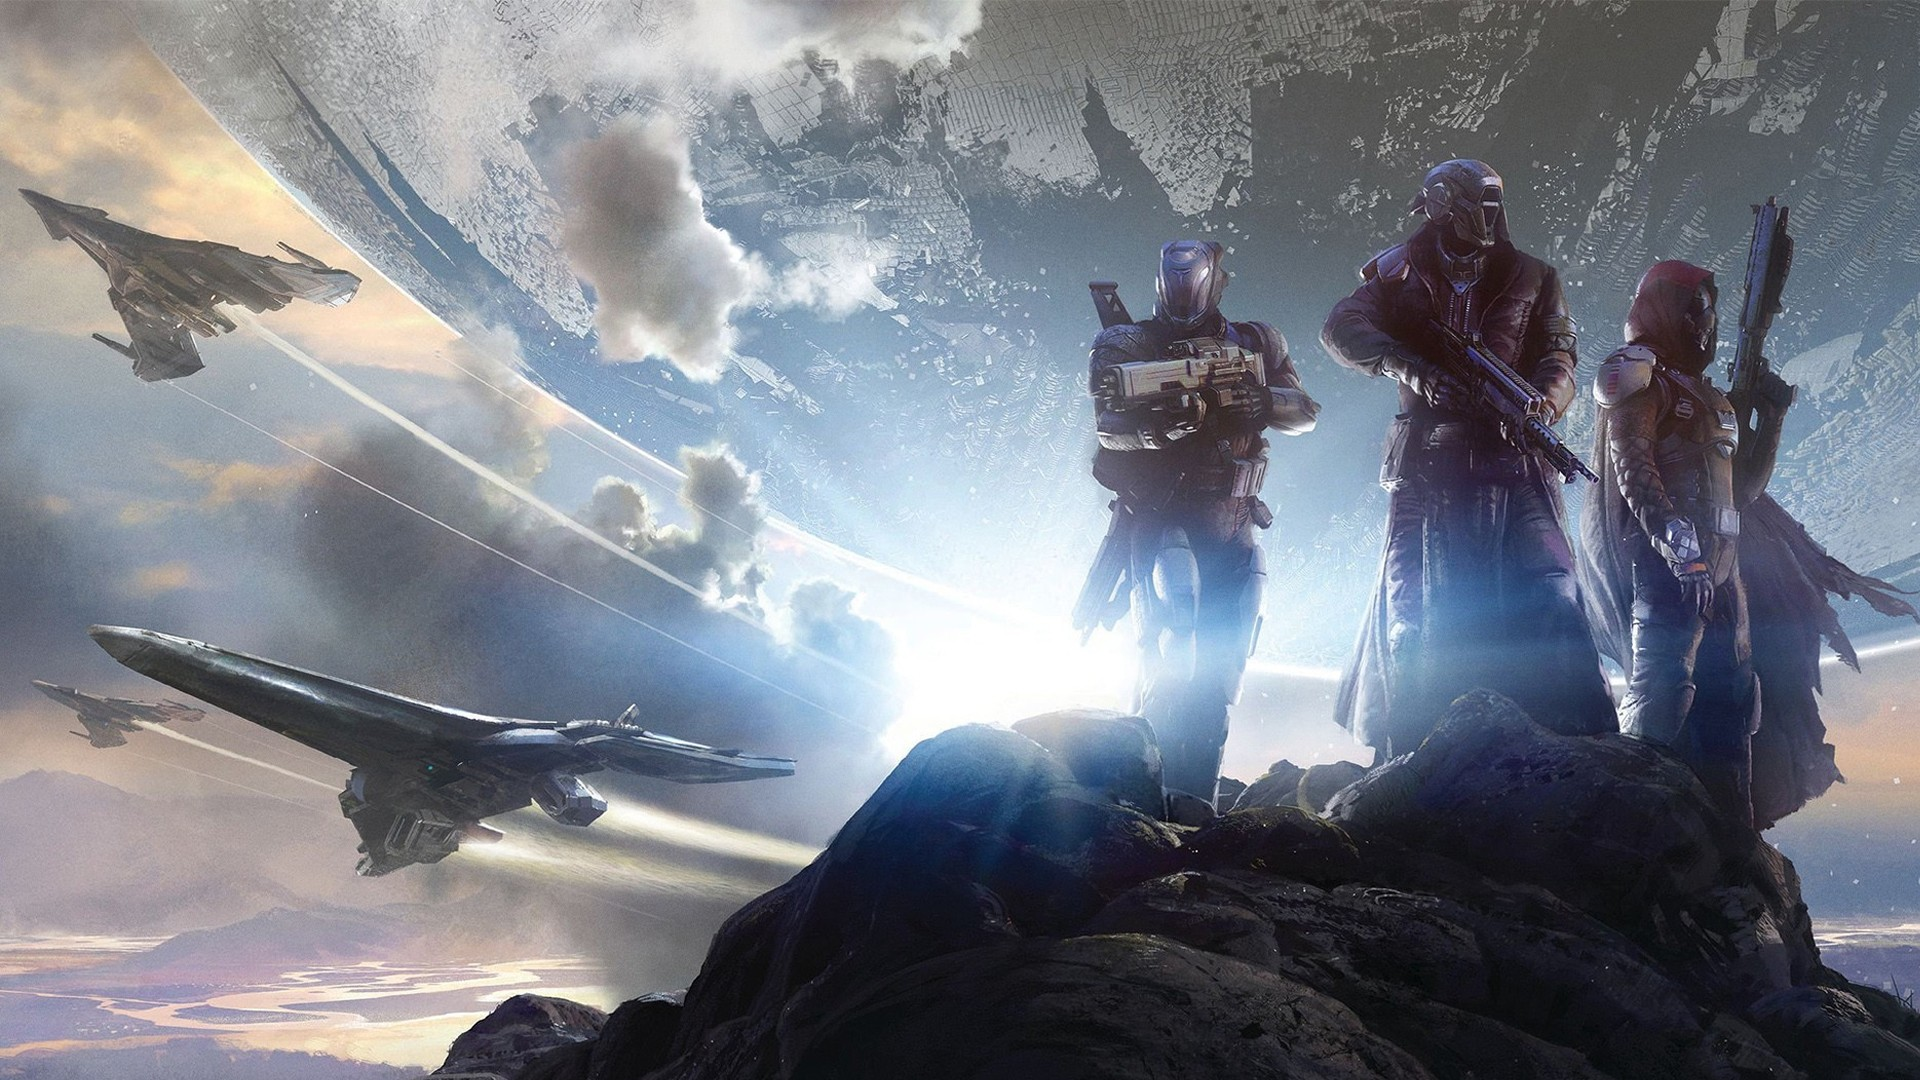 'Destiny' Wins BAFTA For Best Game Of 2014. '